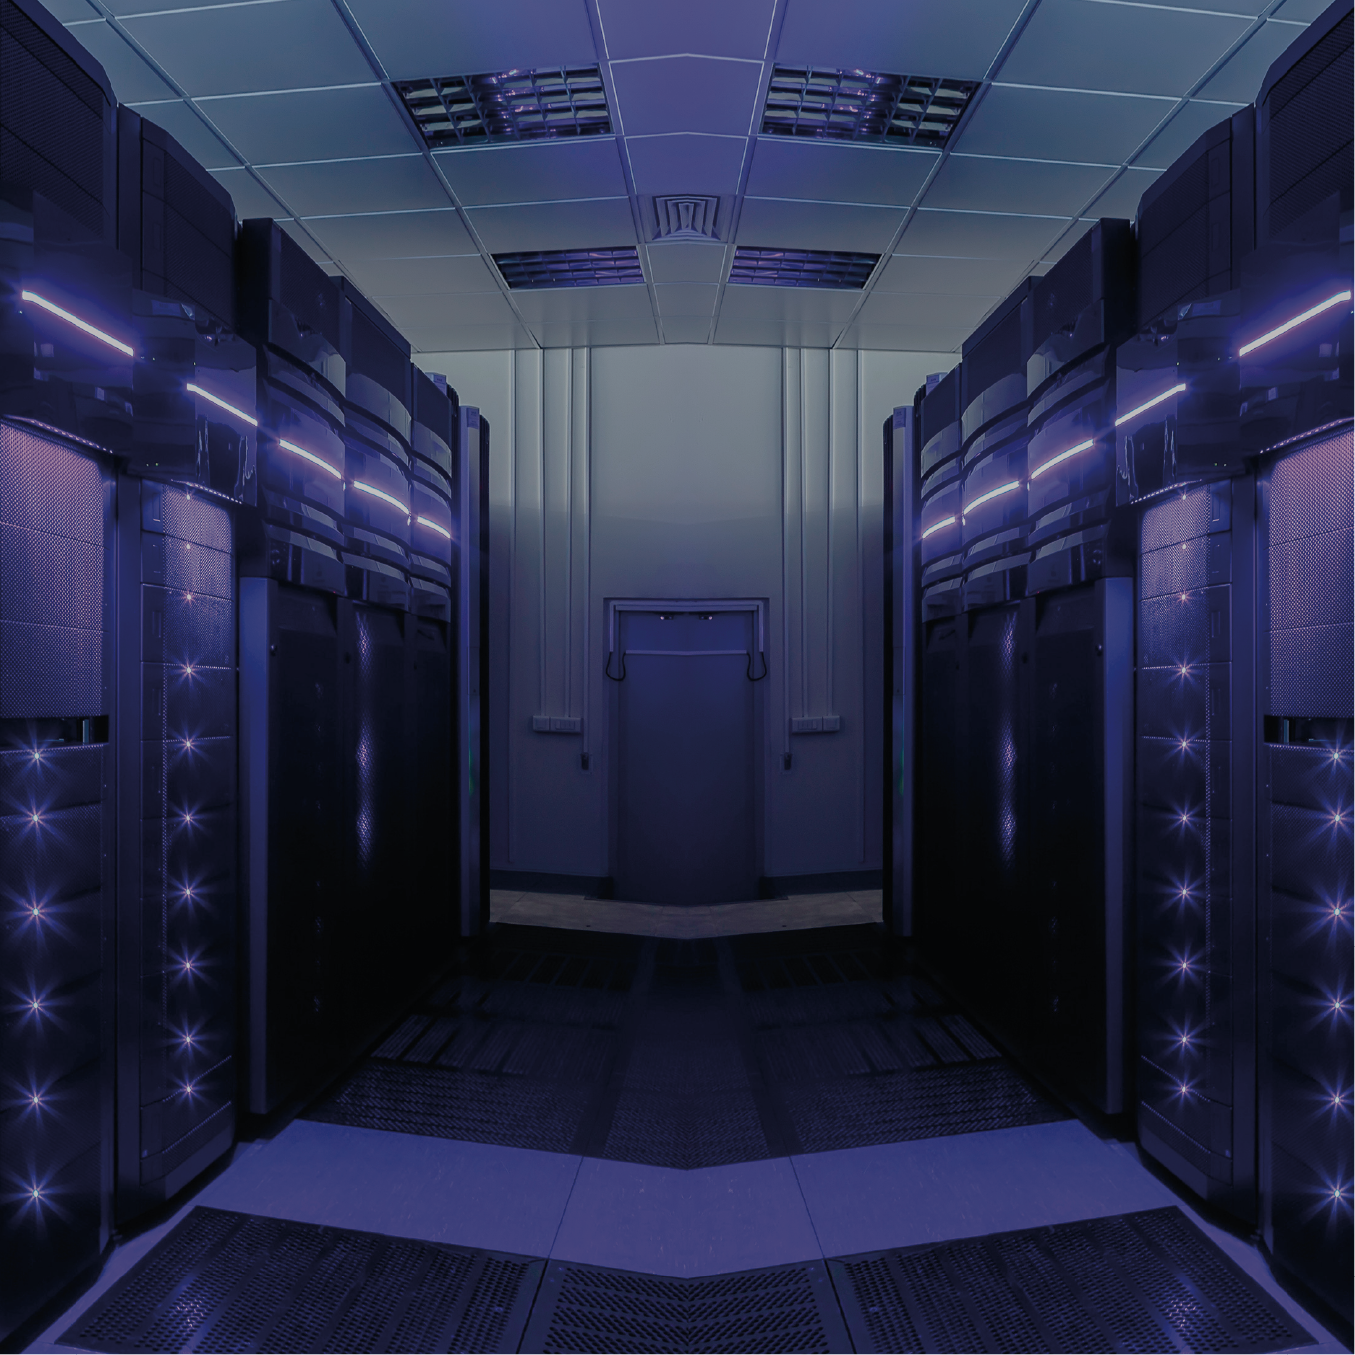 Cooling - Dealing with the heat generated in data centres has become an industry focus to improve efficiency, reduce operational costs and help lower a business's carbon impactLEARN MORE...